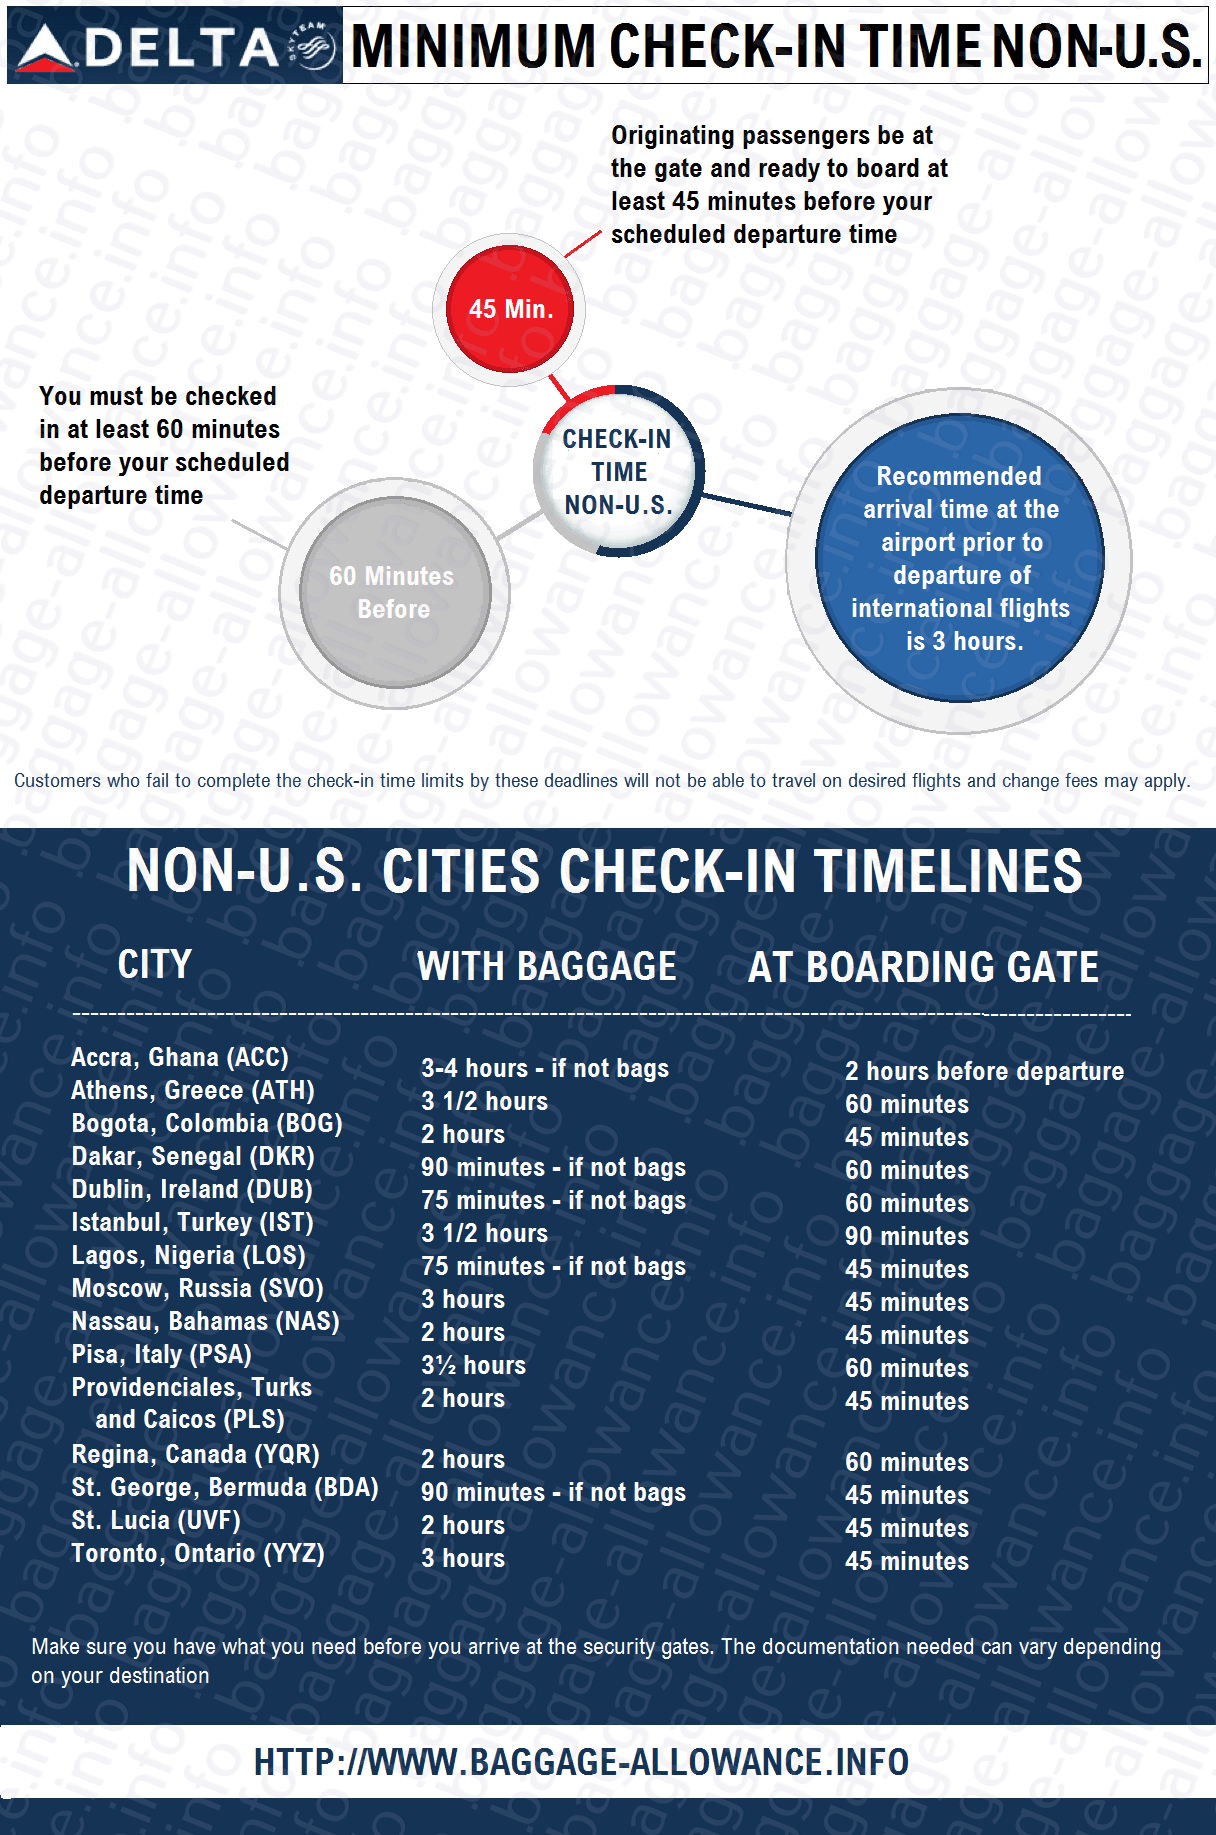 Delta Airlines Minimum Check In Time For Non Us Cities